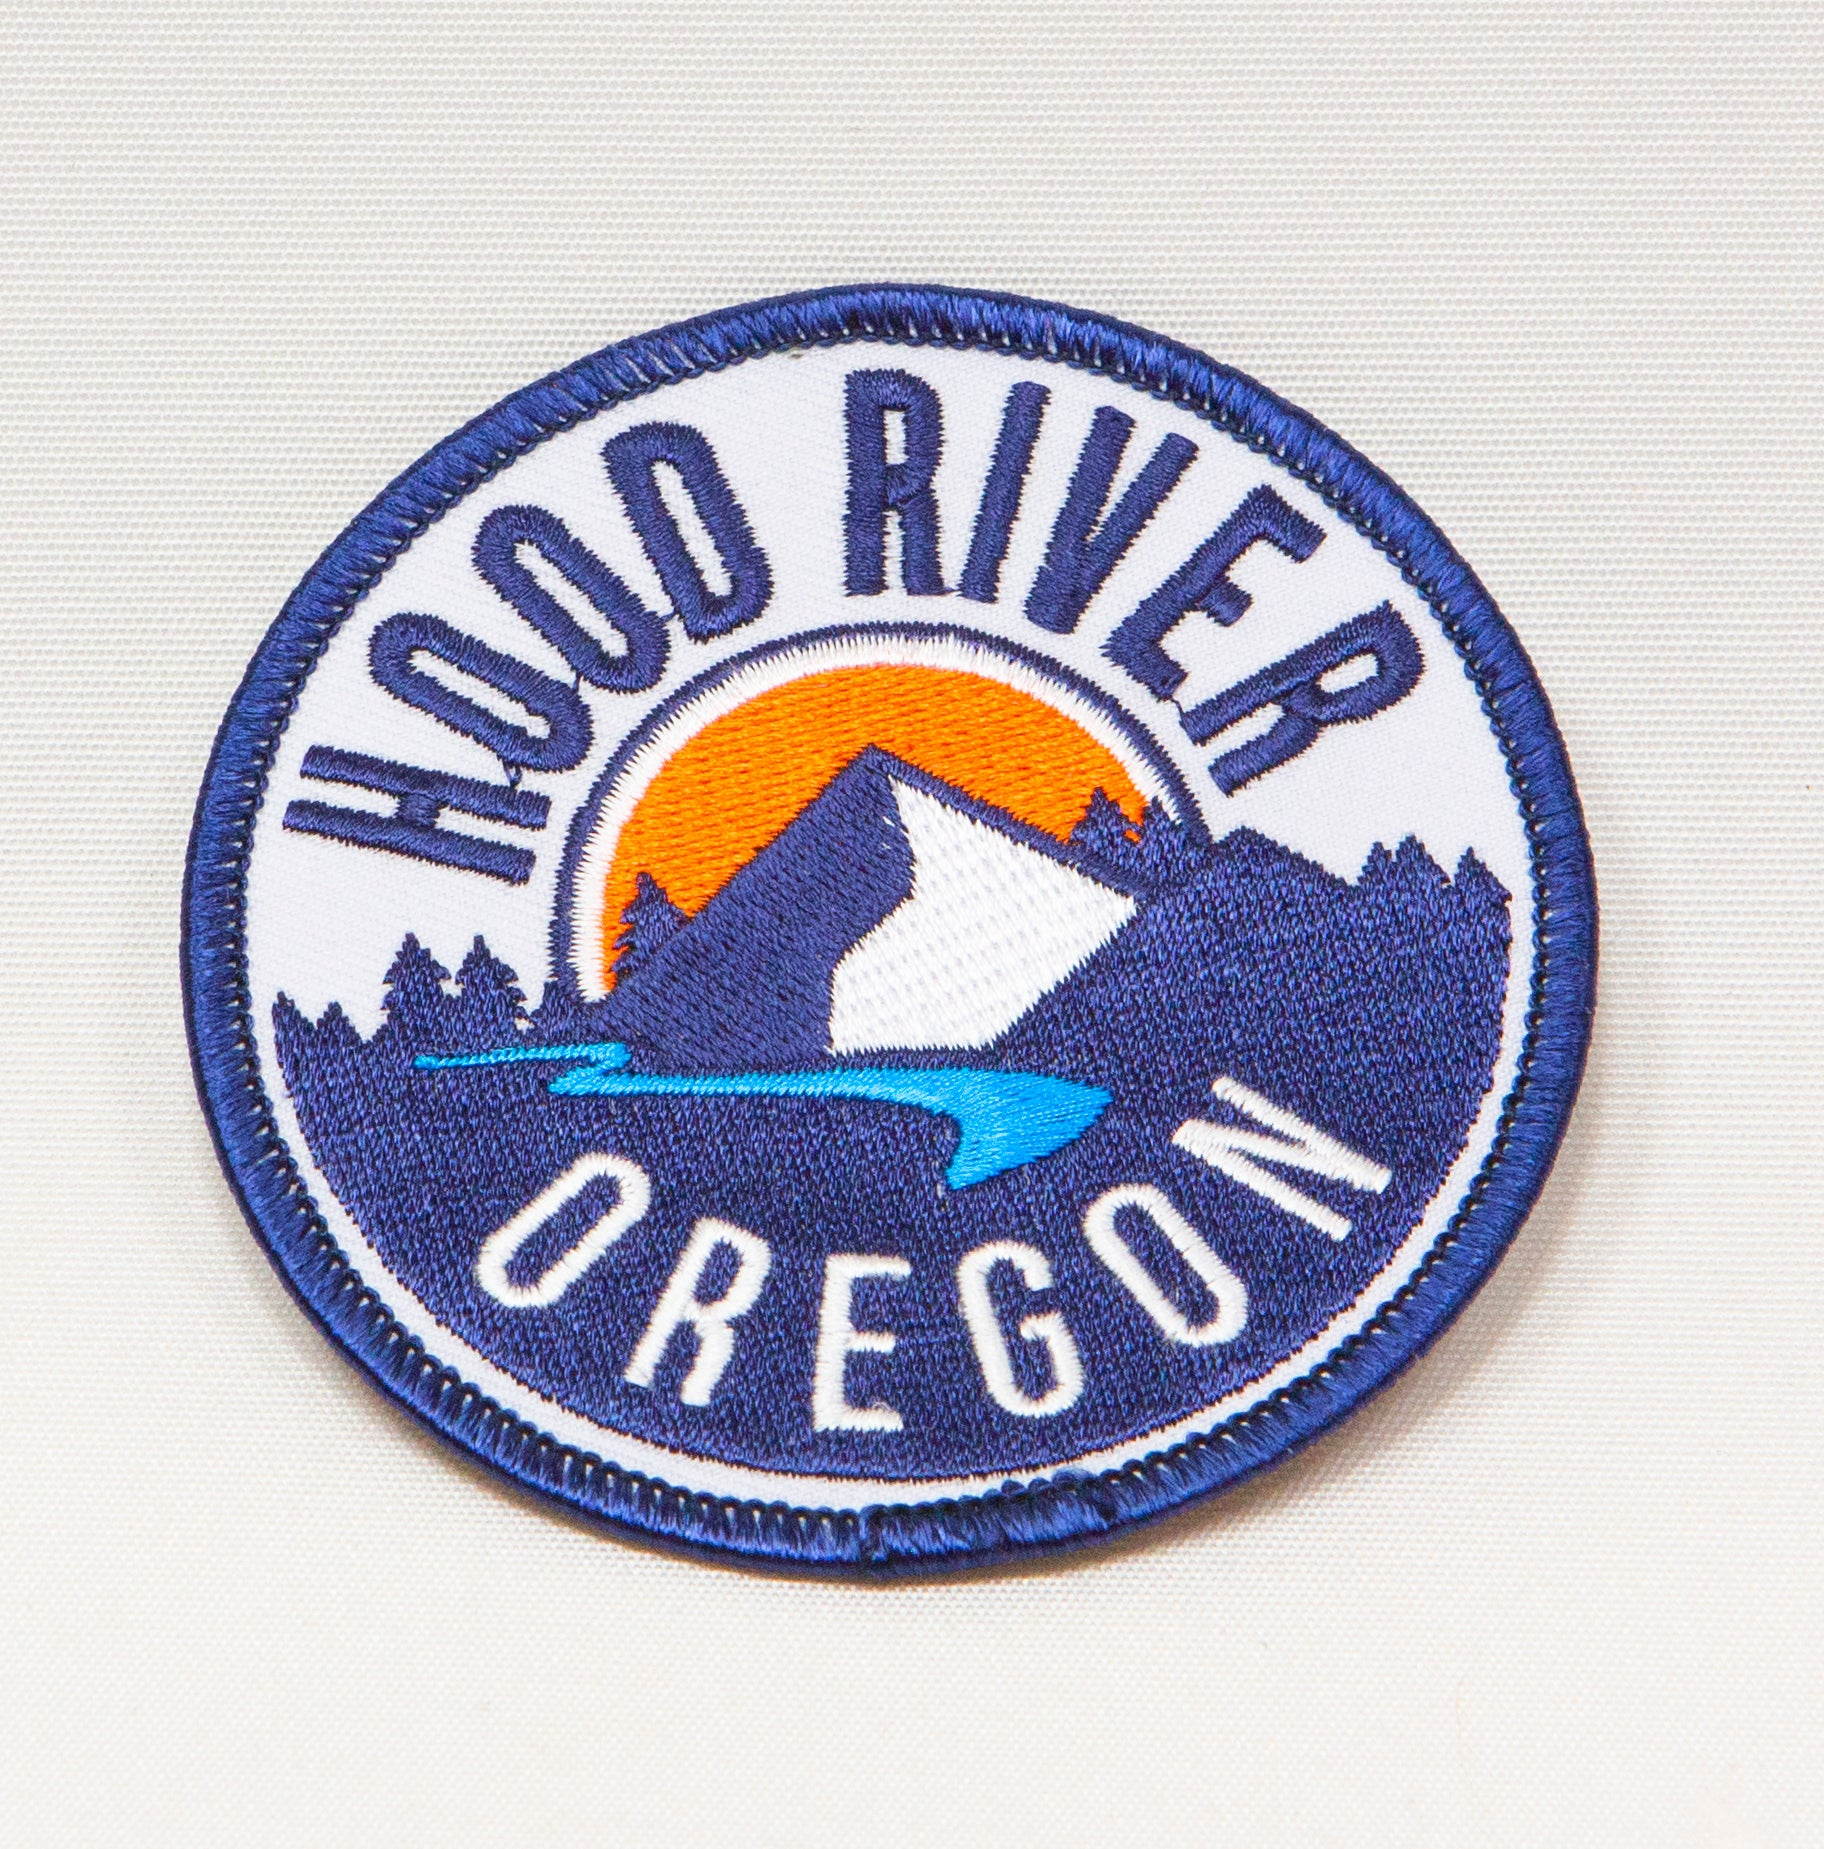 Hood River Patch